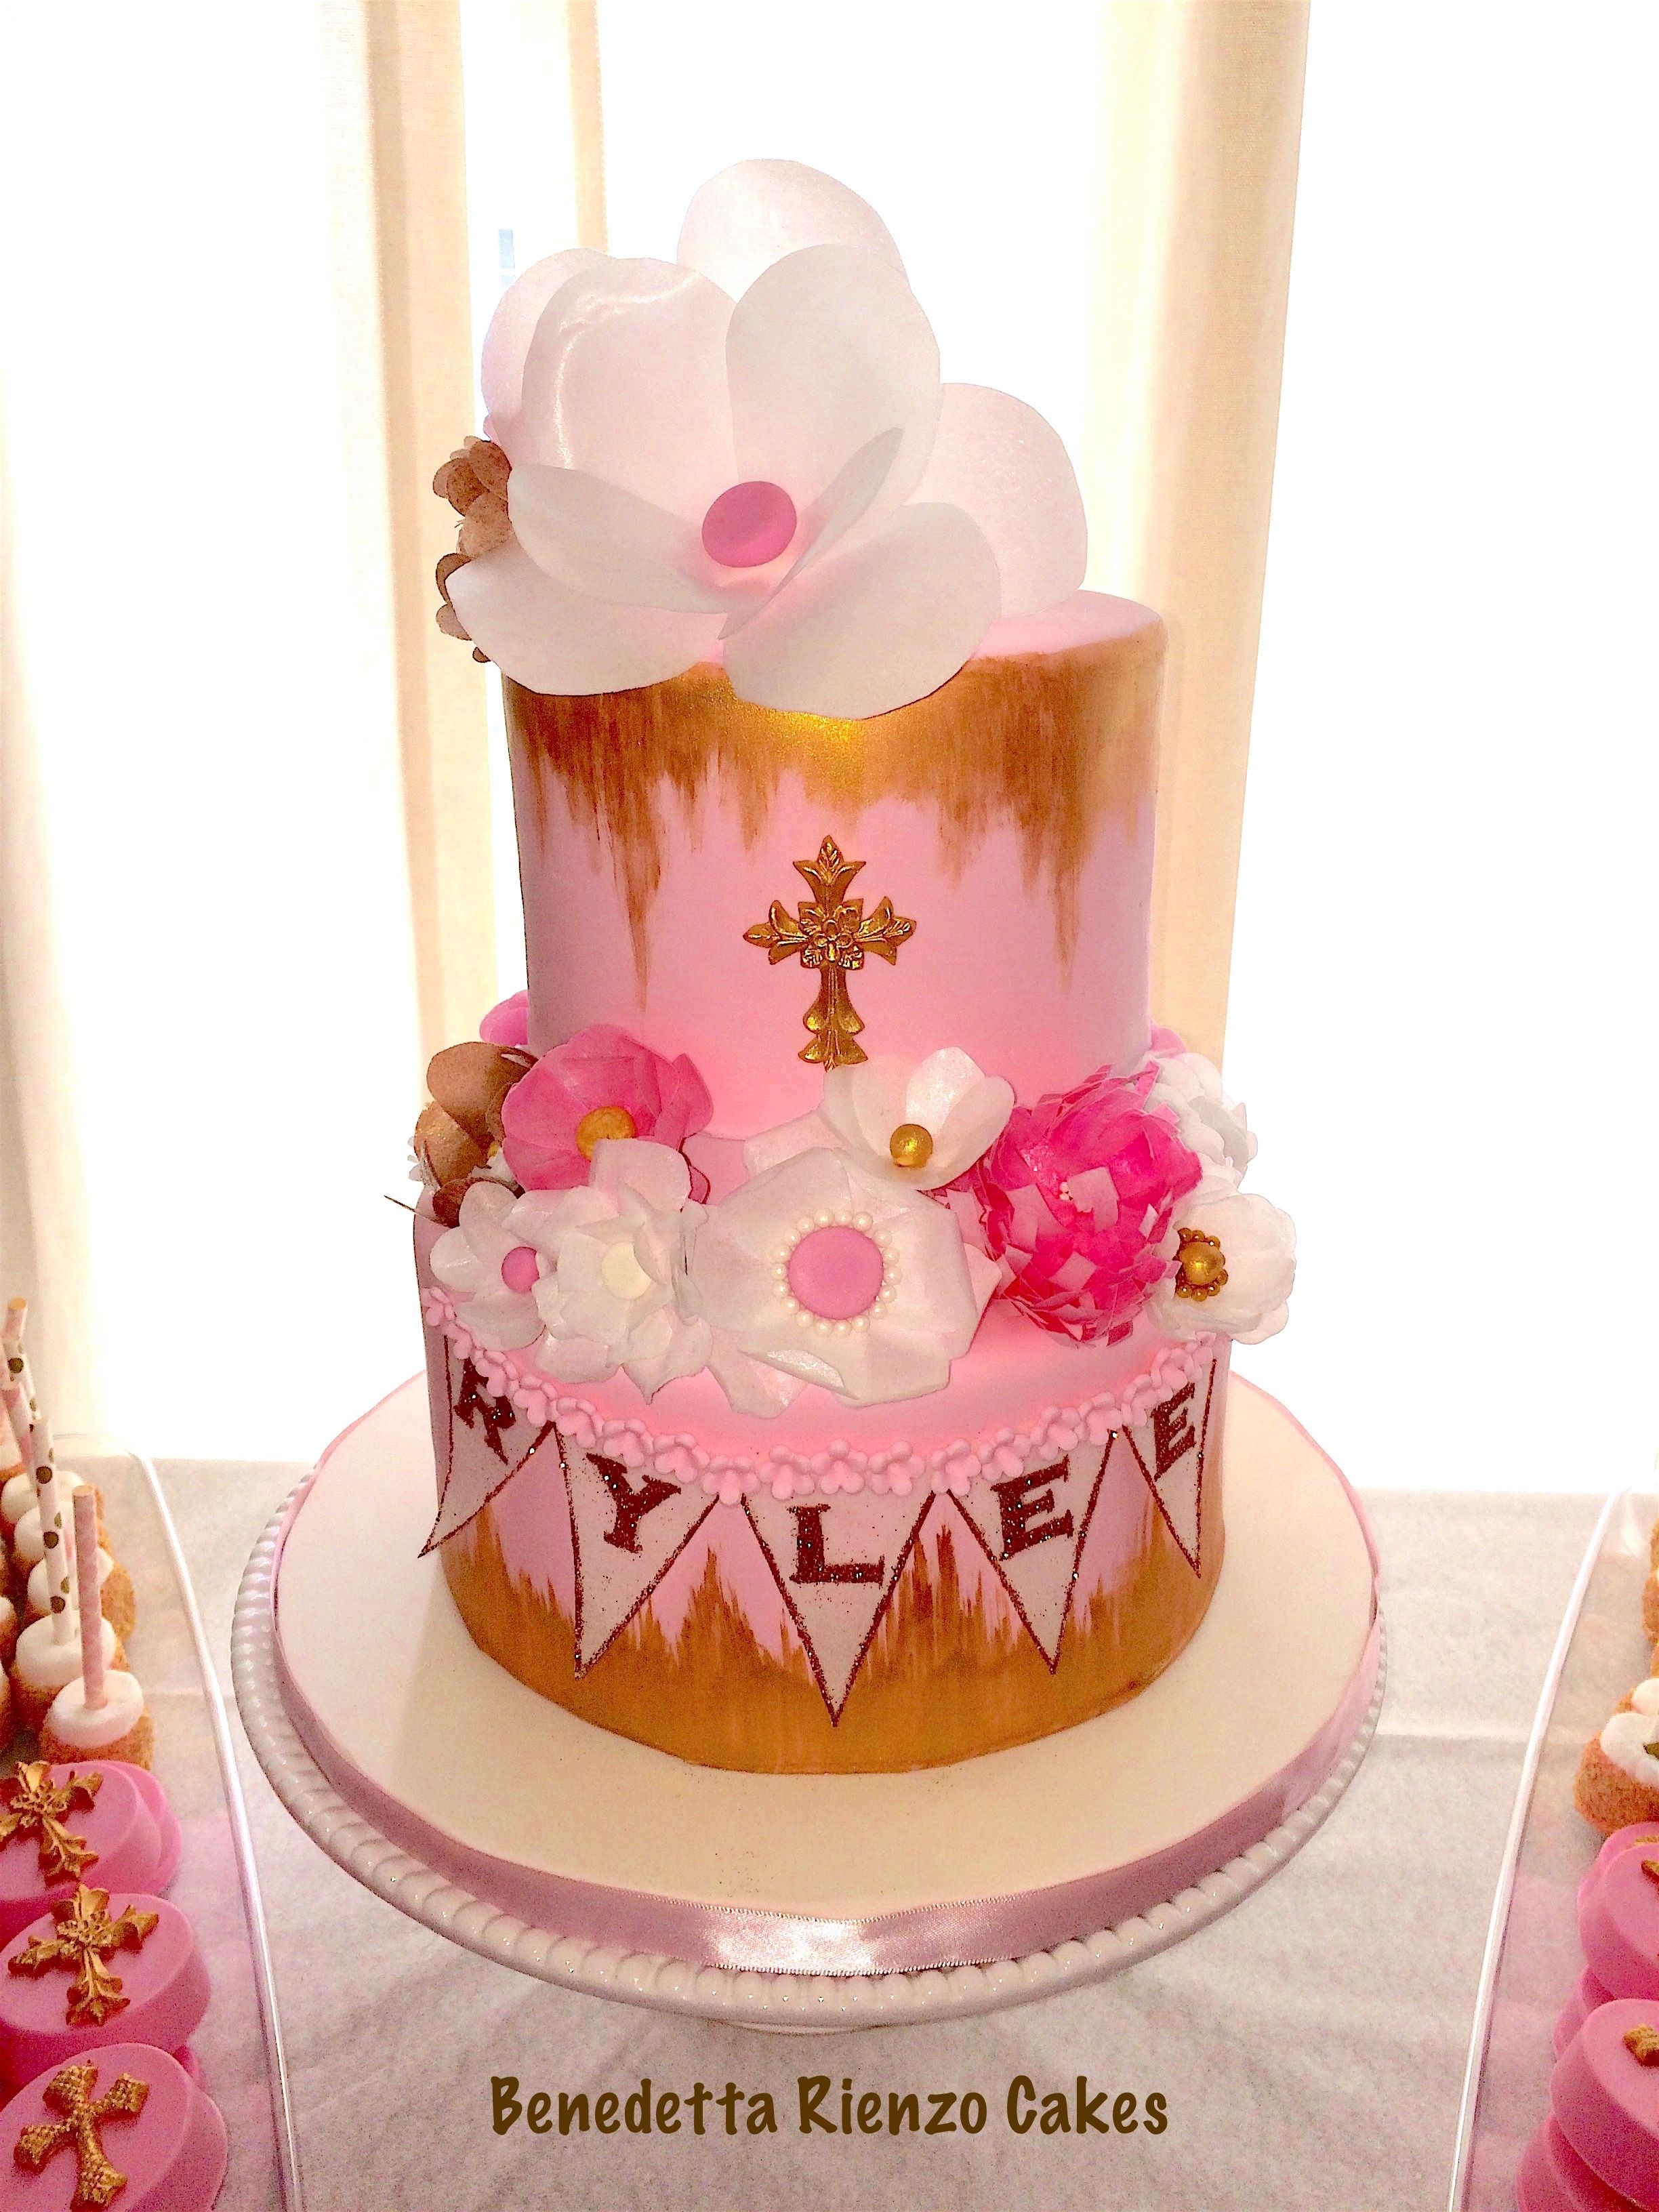 Communion Cake for my niece Benedetta Rienzo Cakes Original design